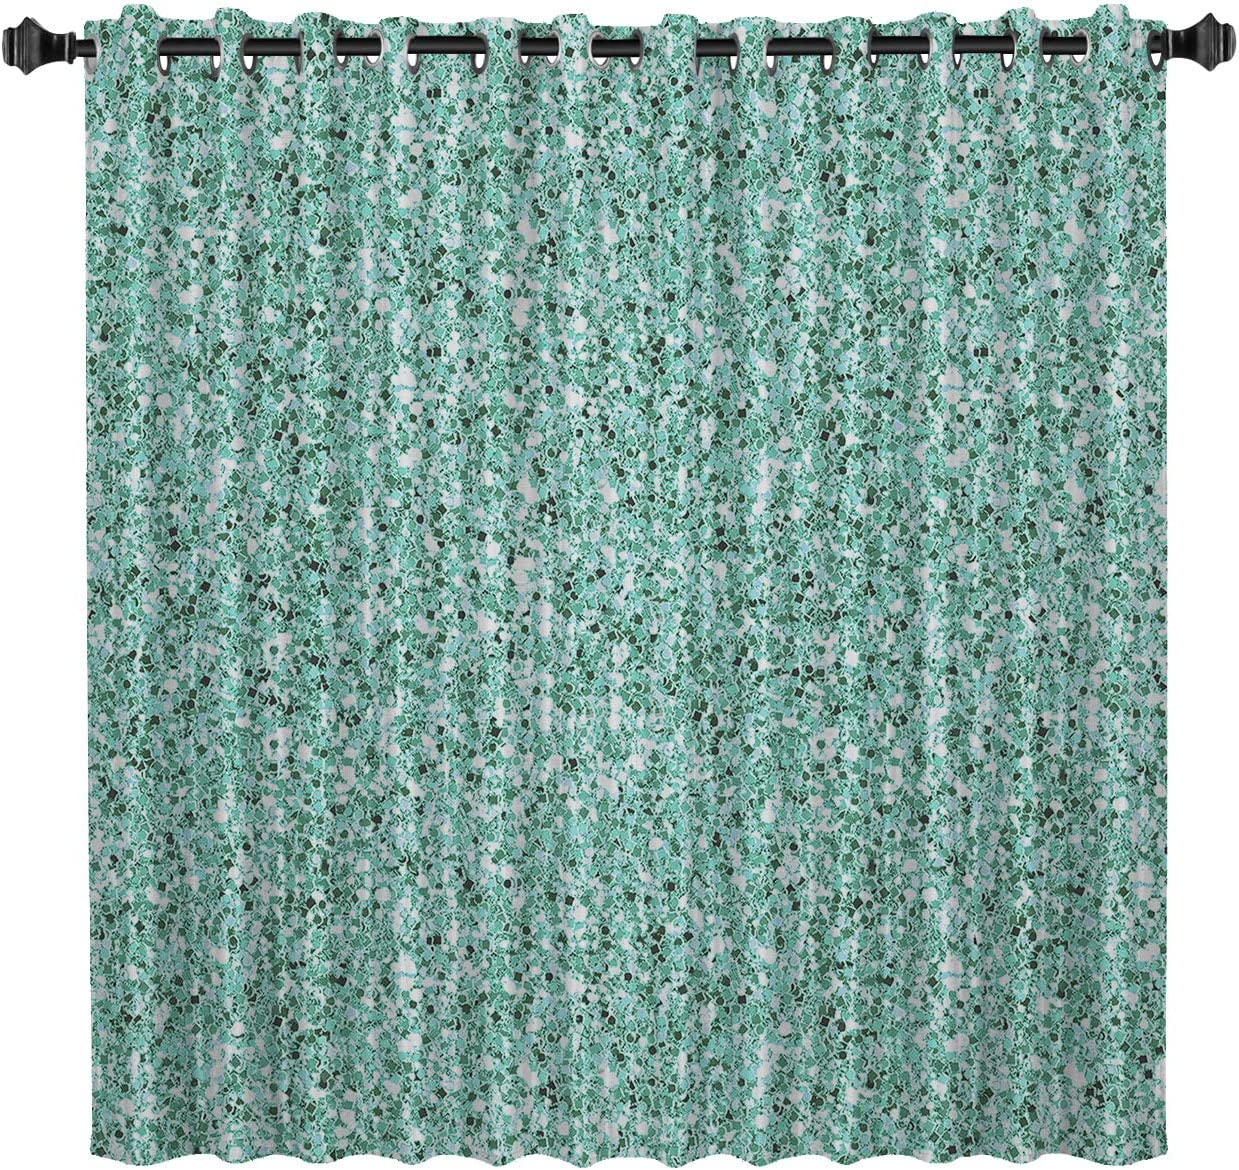 Blackout Room Darkening Curtains 52 by Inch Teal Shine Nippon regular agency 96 Max 72% OFF Green